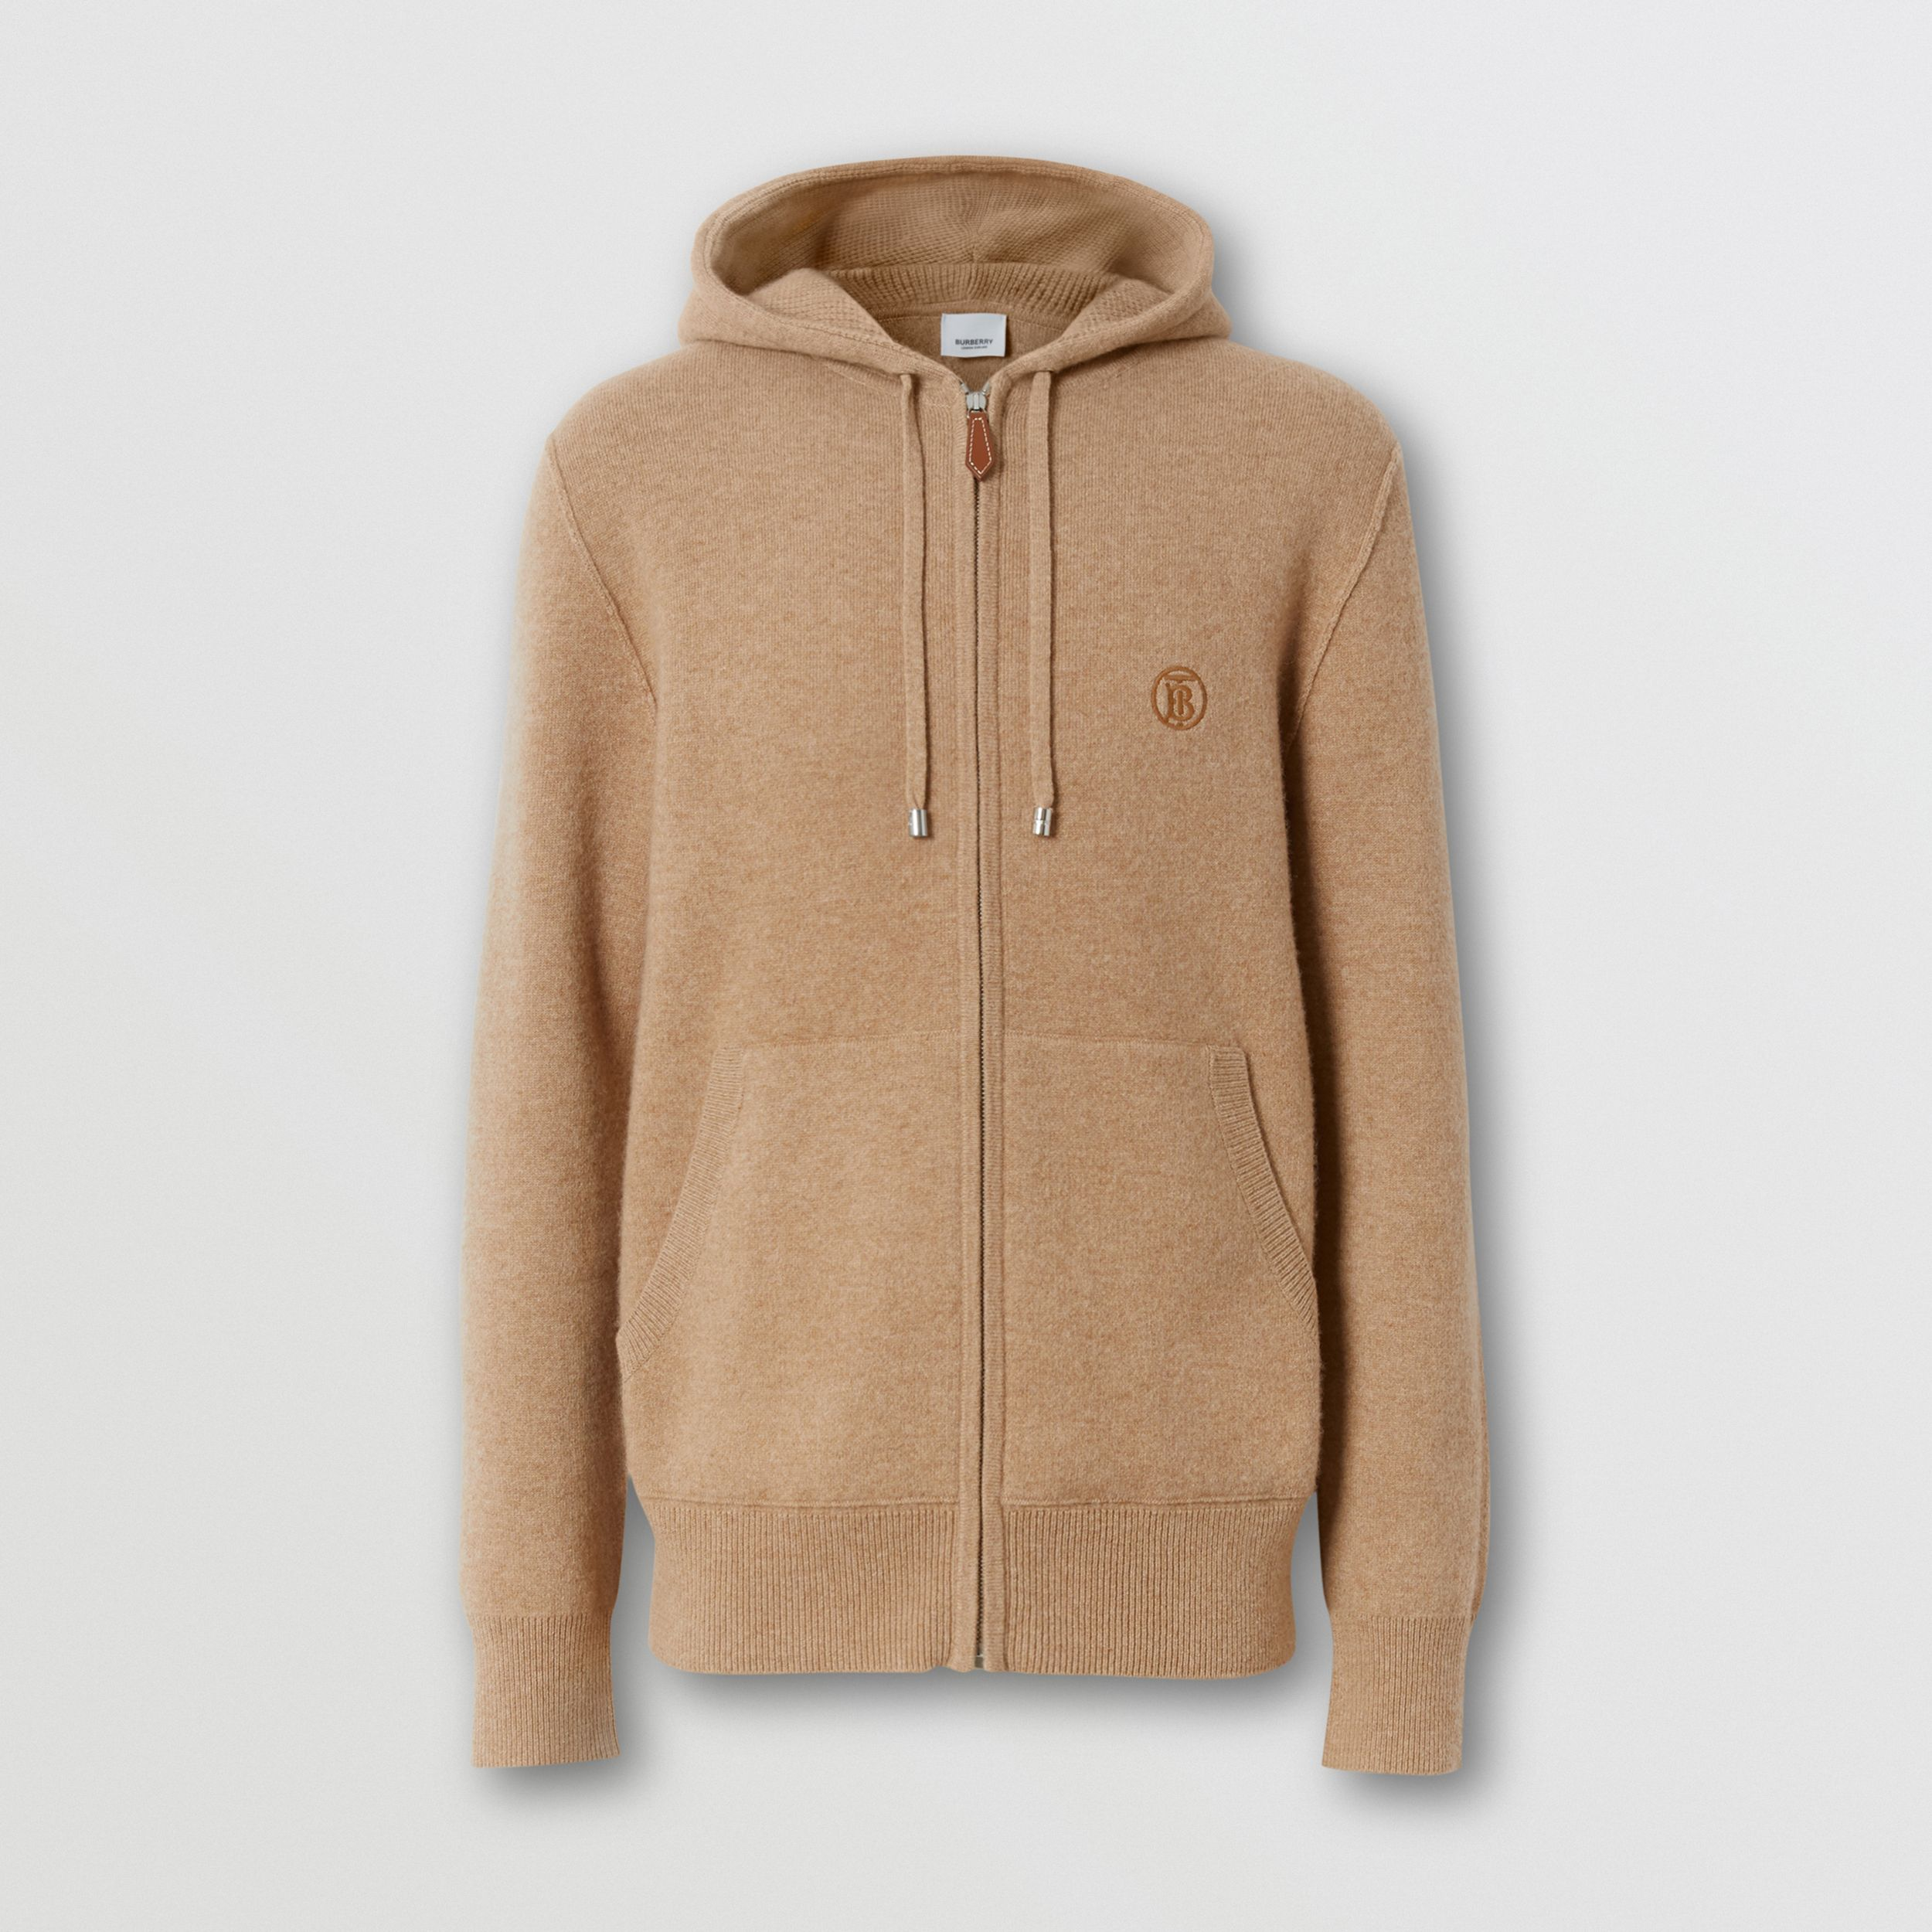 Monogram Motif Cashmere Blend Hooded Top in Pale Coffee - Men | Burberry - 4